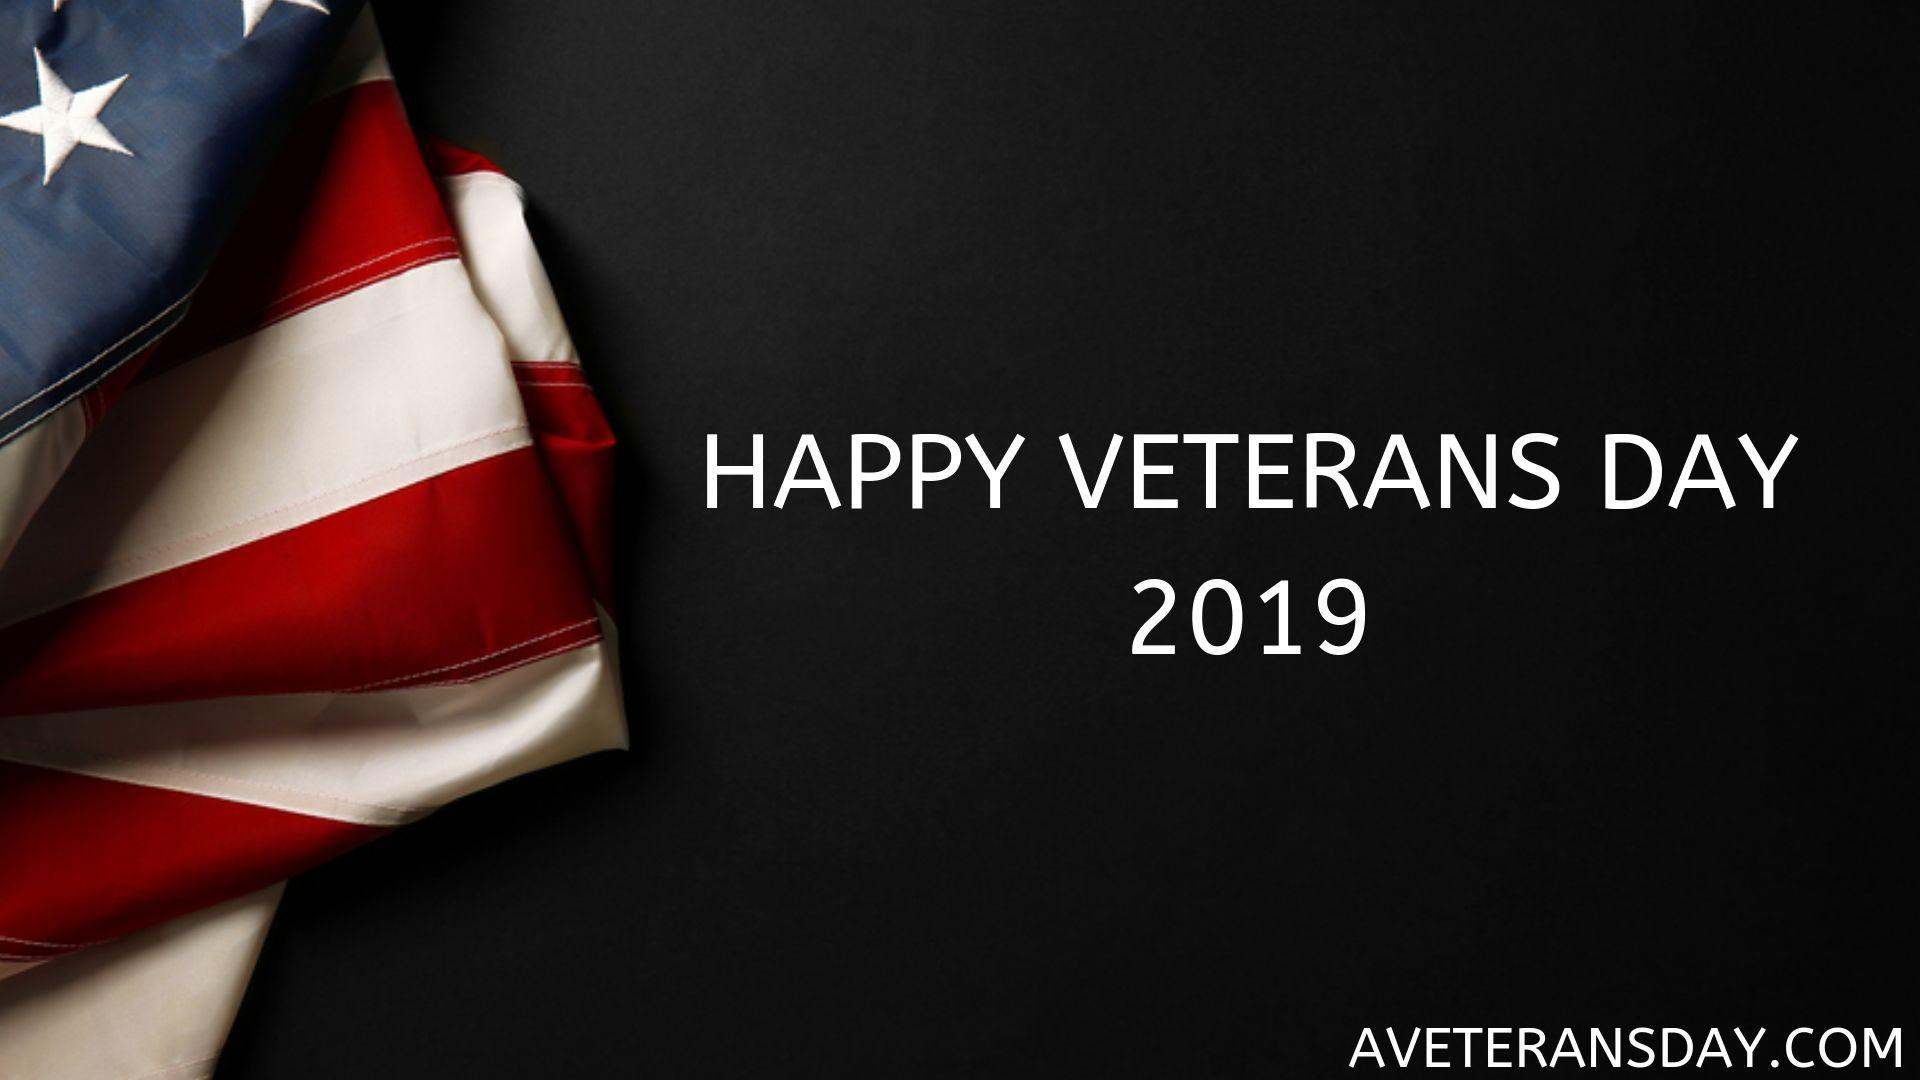 Happy Veterans Day 2019 History, Quotes, Memes, Messages